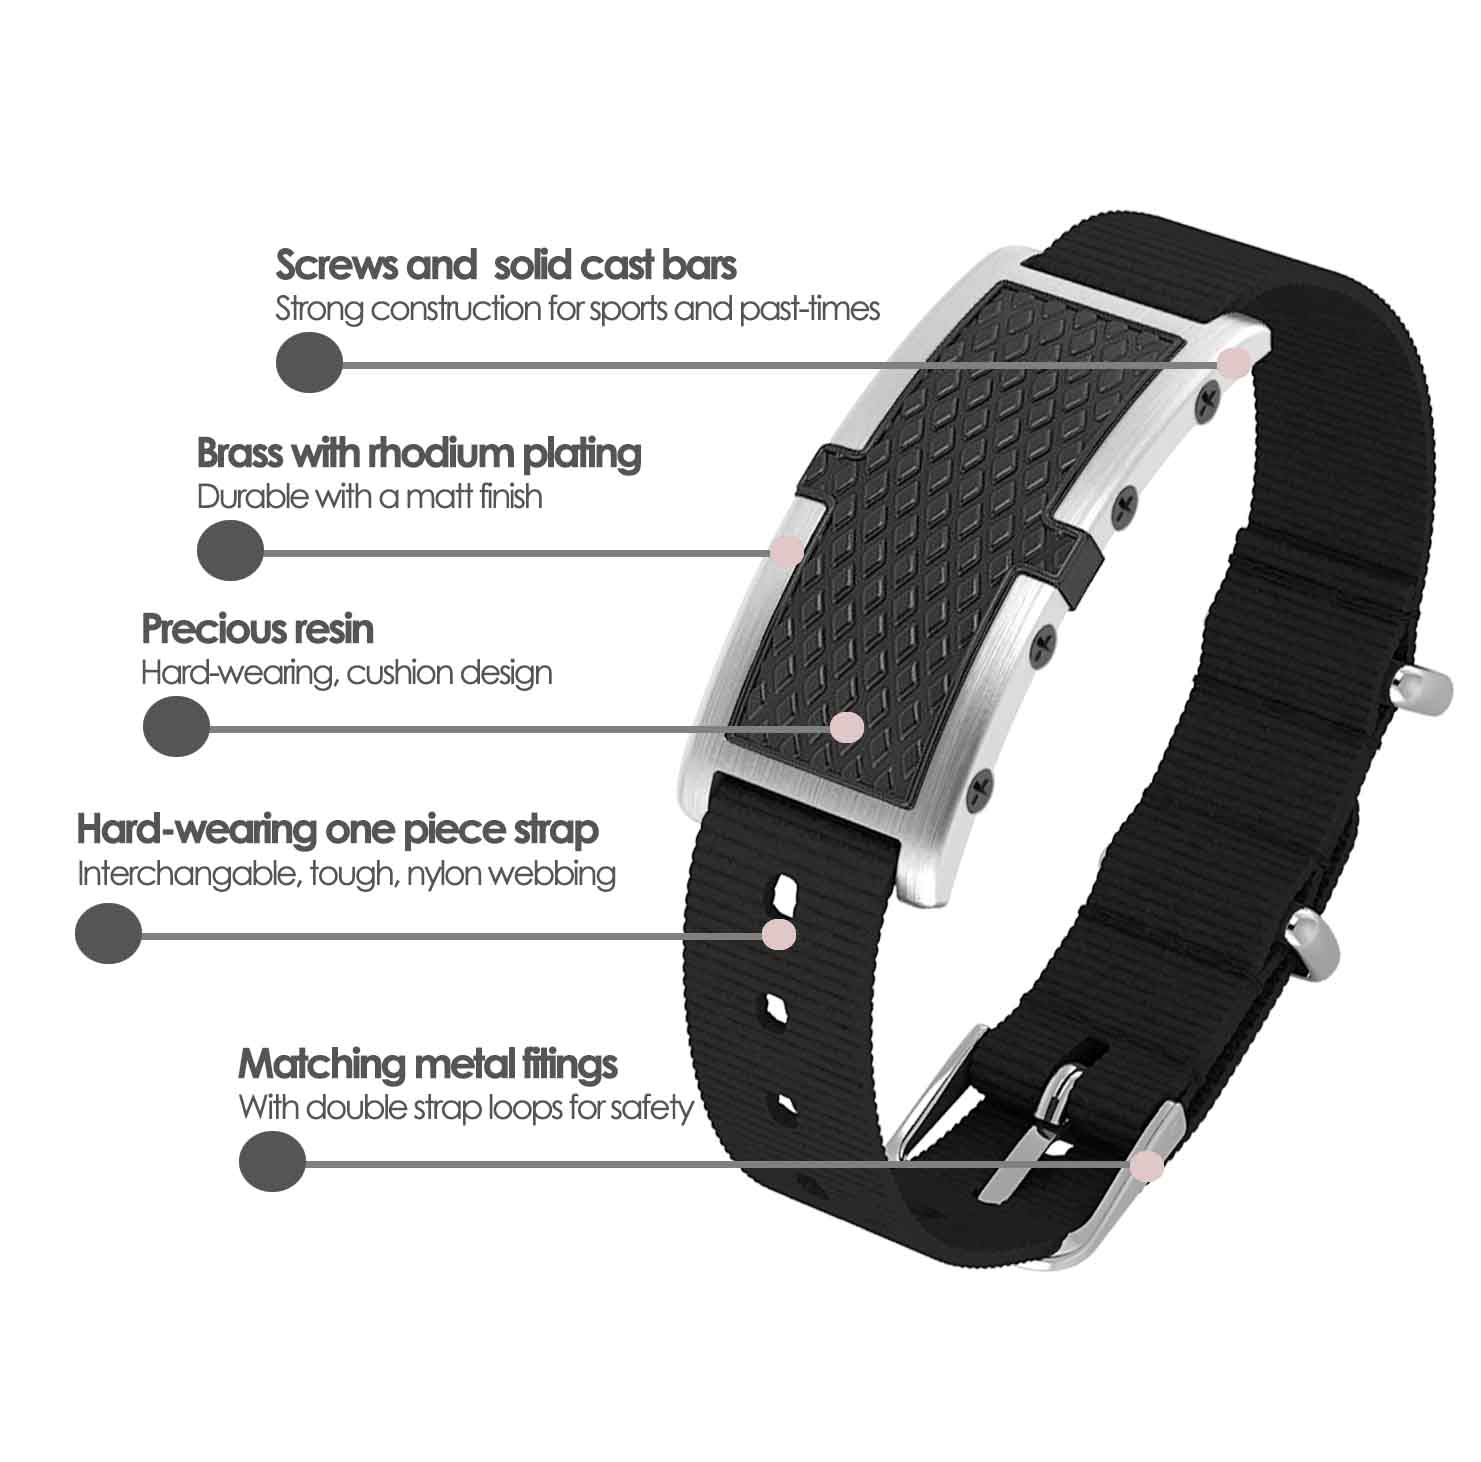 Oxford contactless payment wearable bracelet black and black nylon product details specification